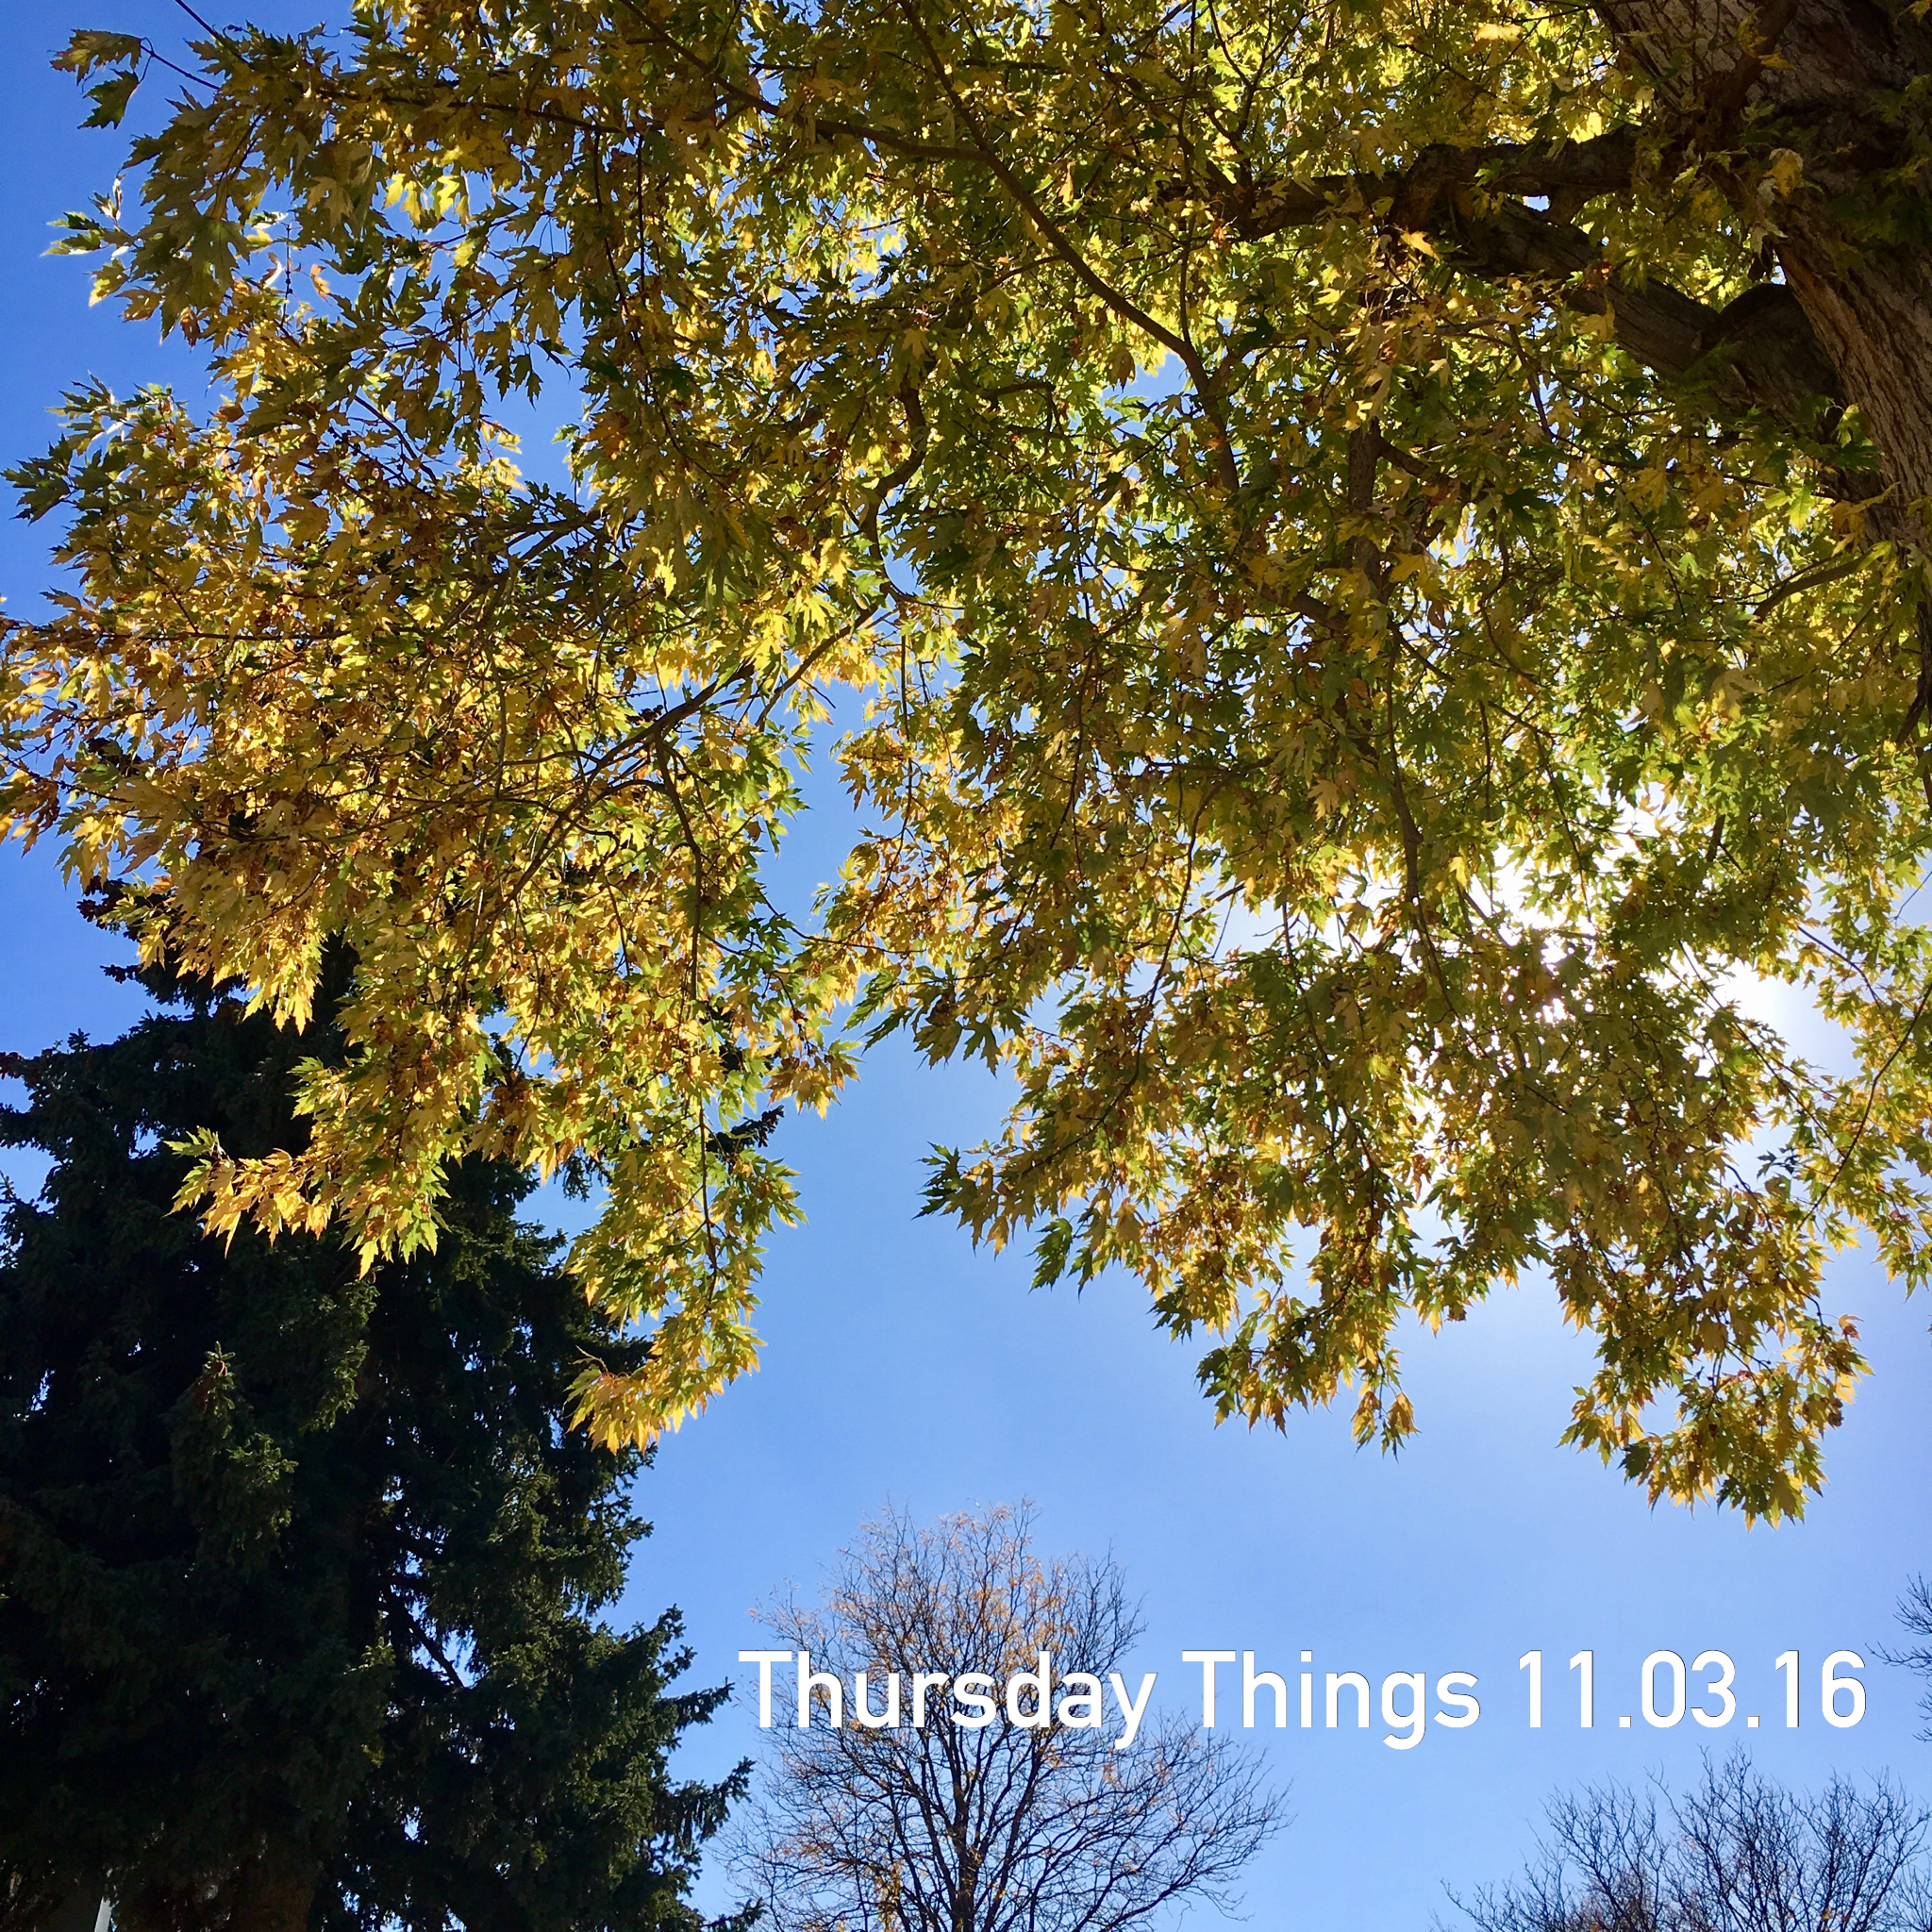 thursday things 11.03.16